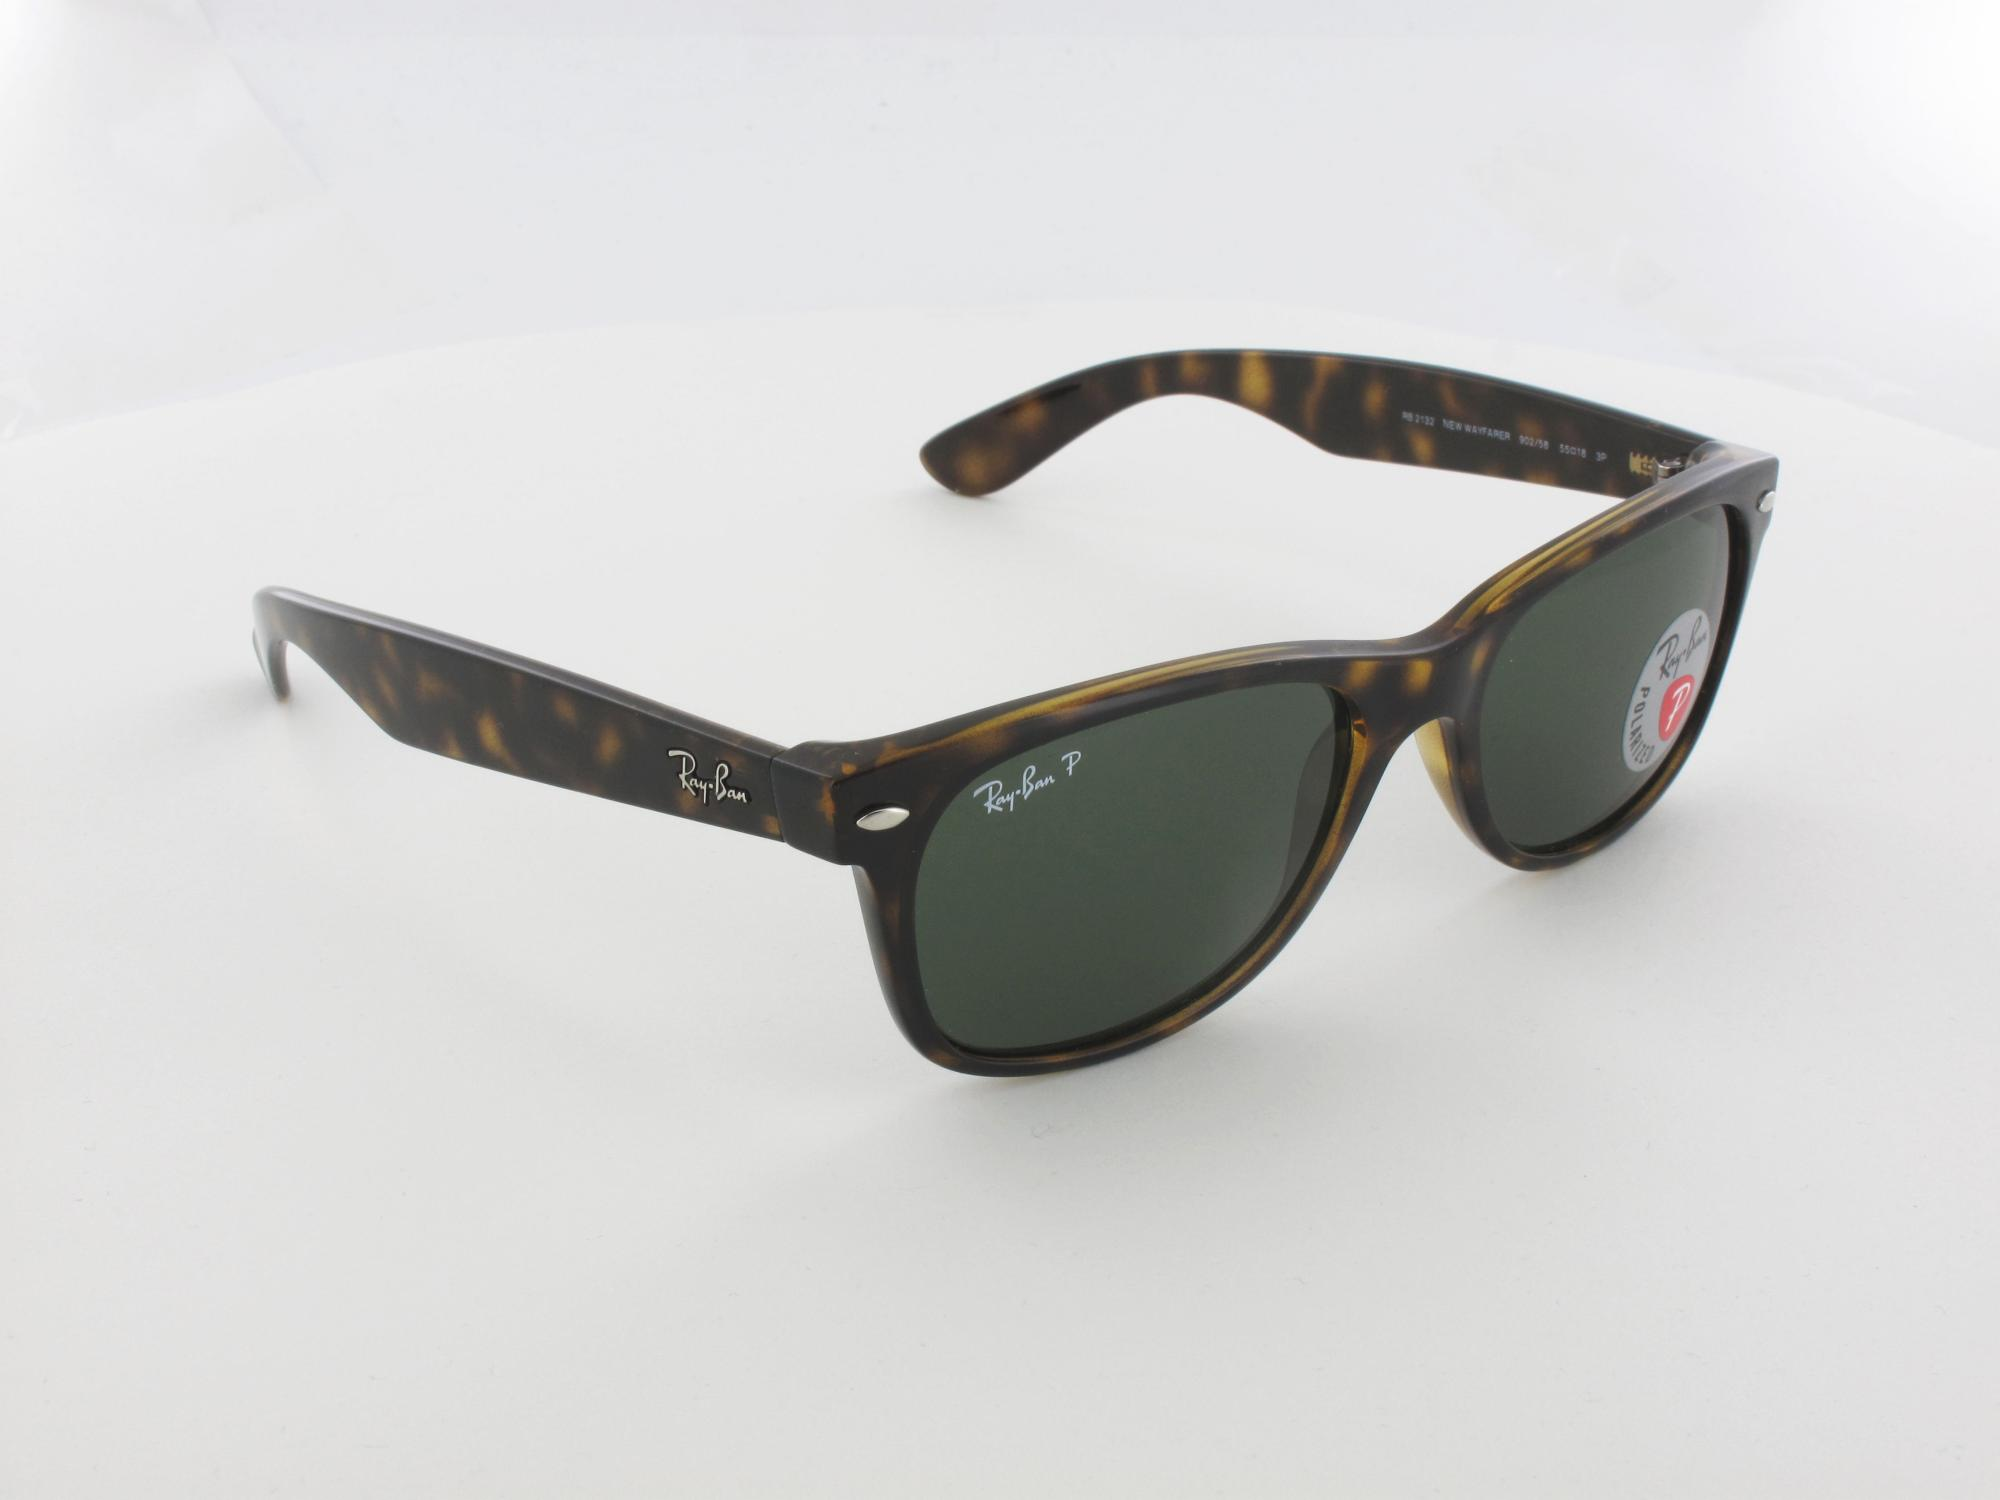 Ray Ban | New Wayfarer RB2132 902/58 55 | tortoise / crystal green polarized